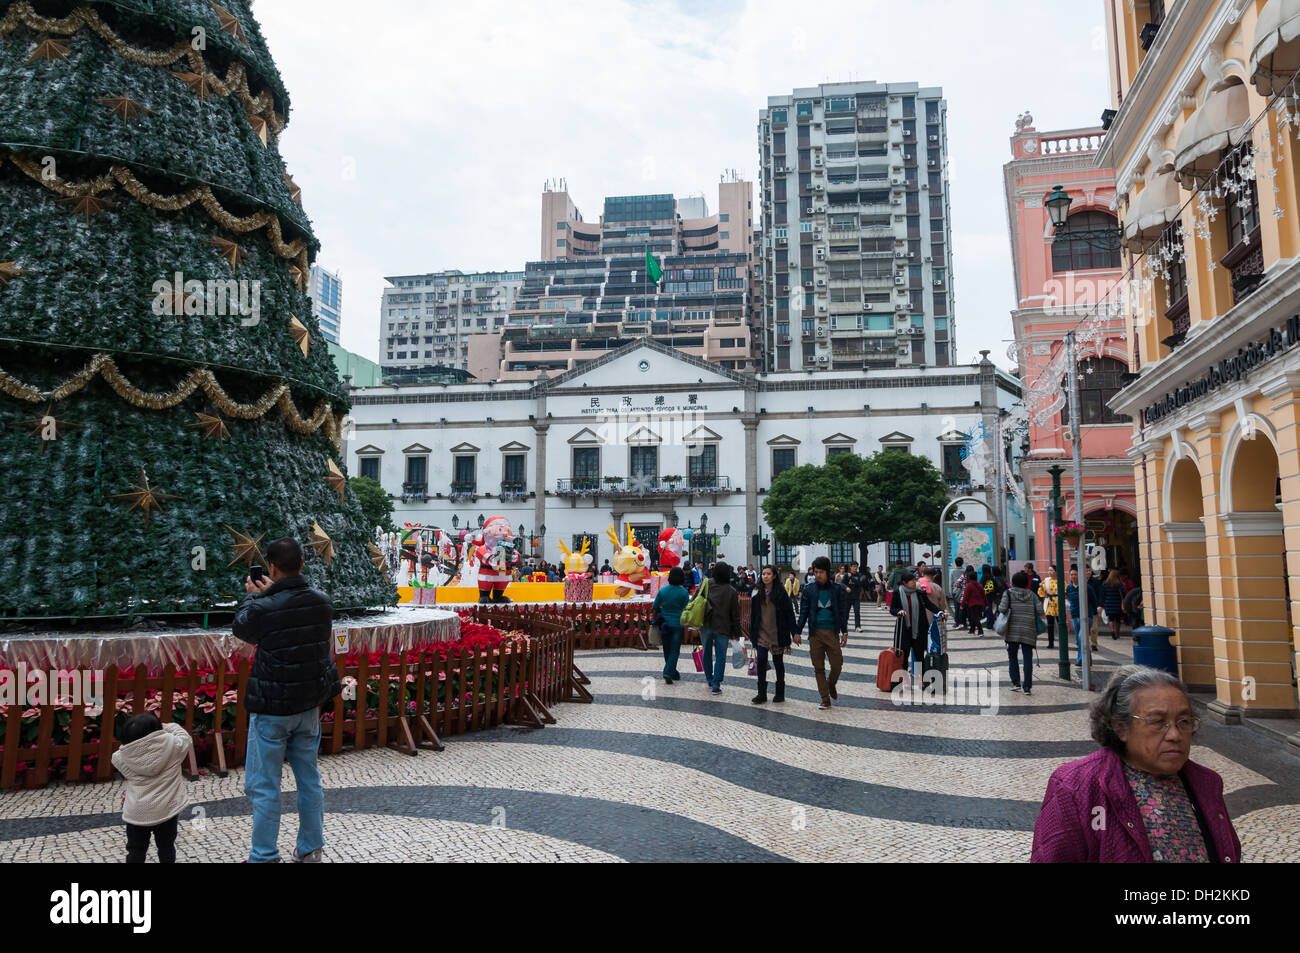 Tourists and shoppers wander around Senado Square in Macau, China. - Stock Image